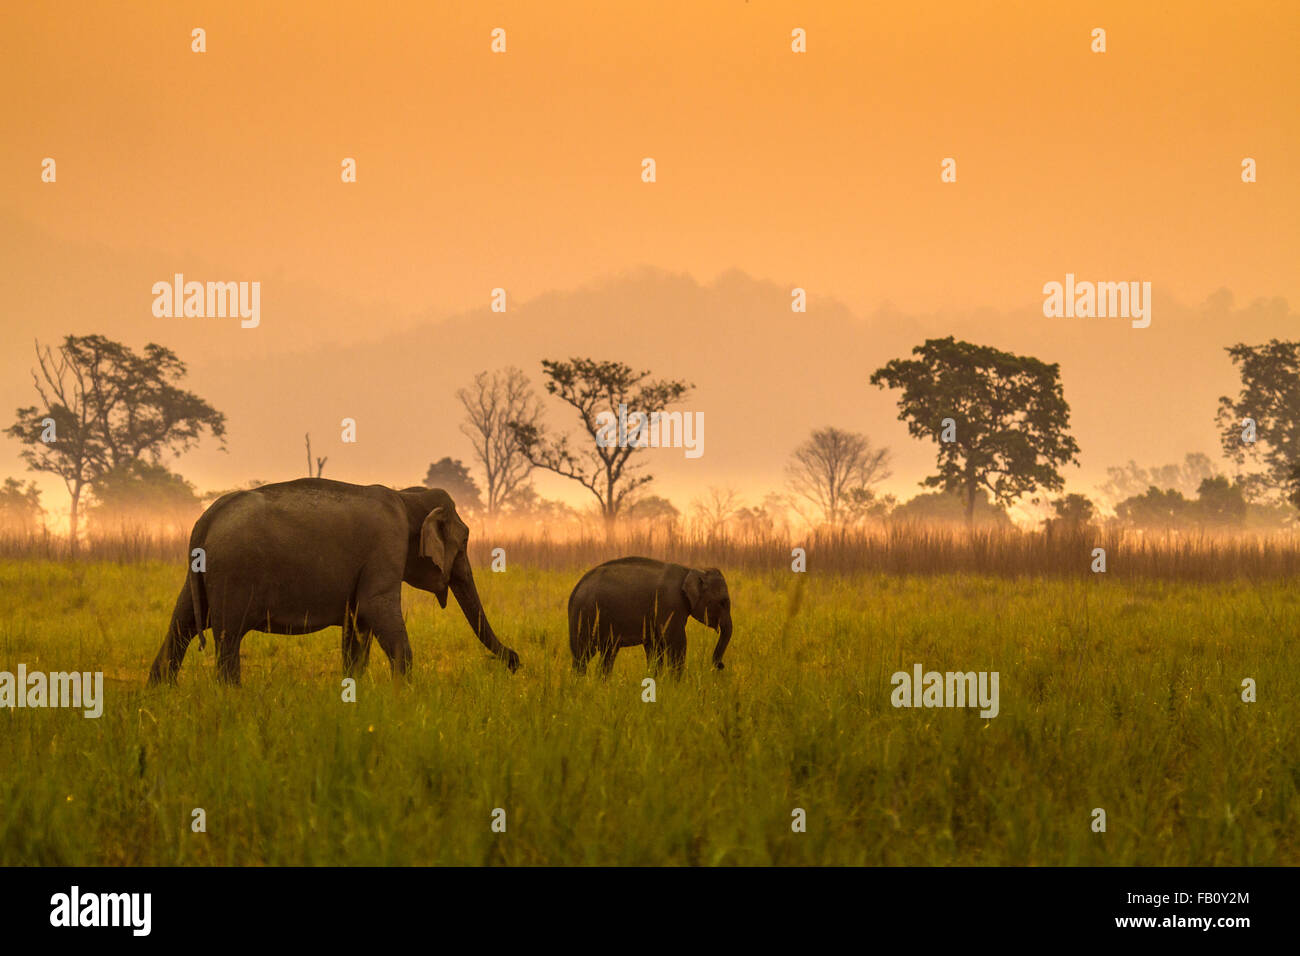 Elephant with Calf - Stock Image